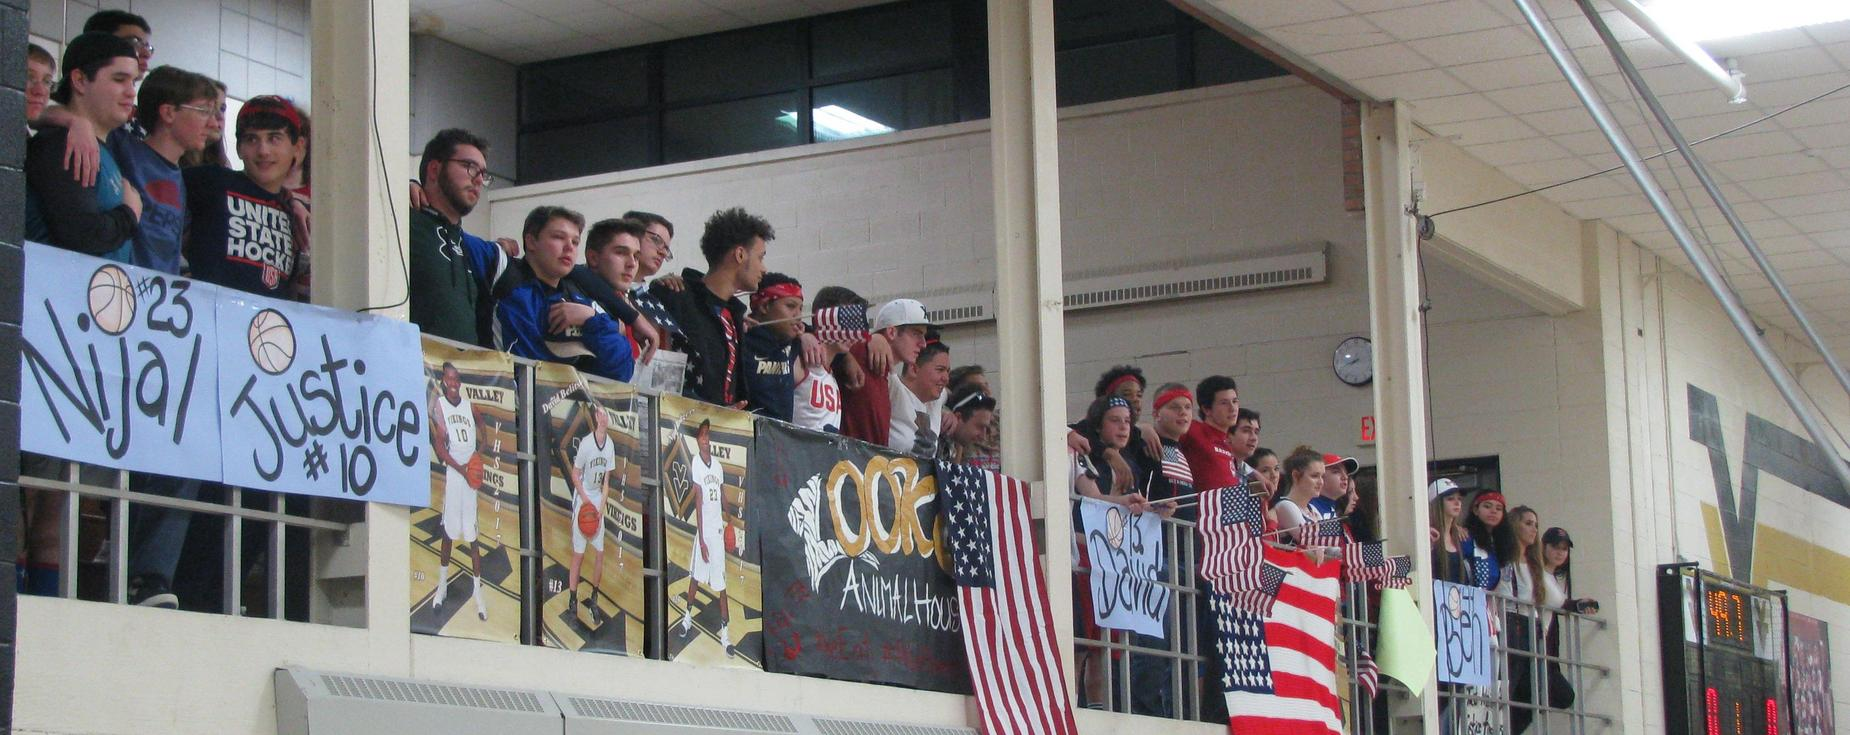 Valley High School fans cheering on their basketball team.